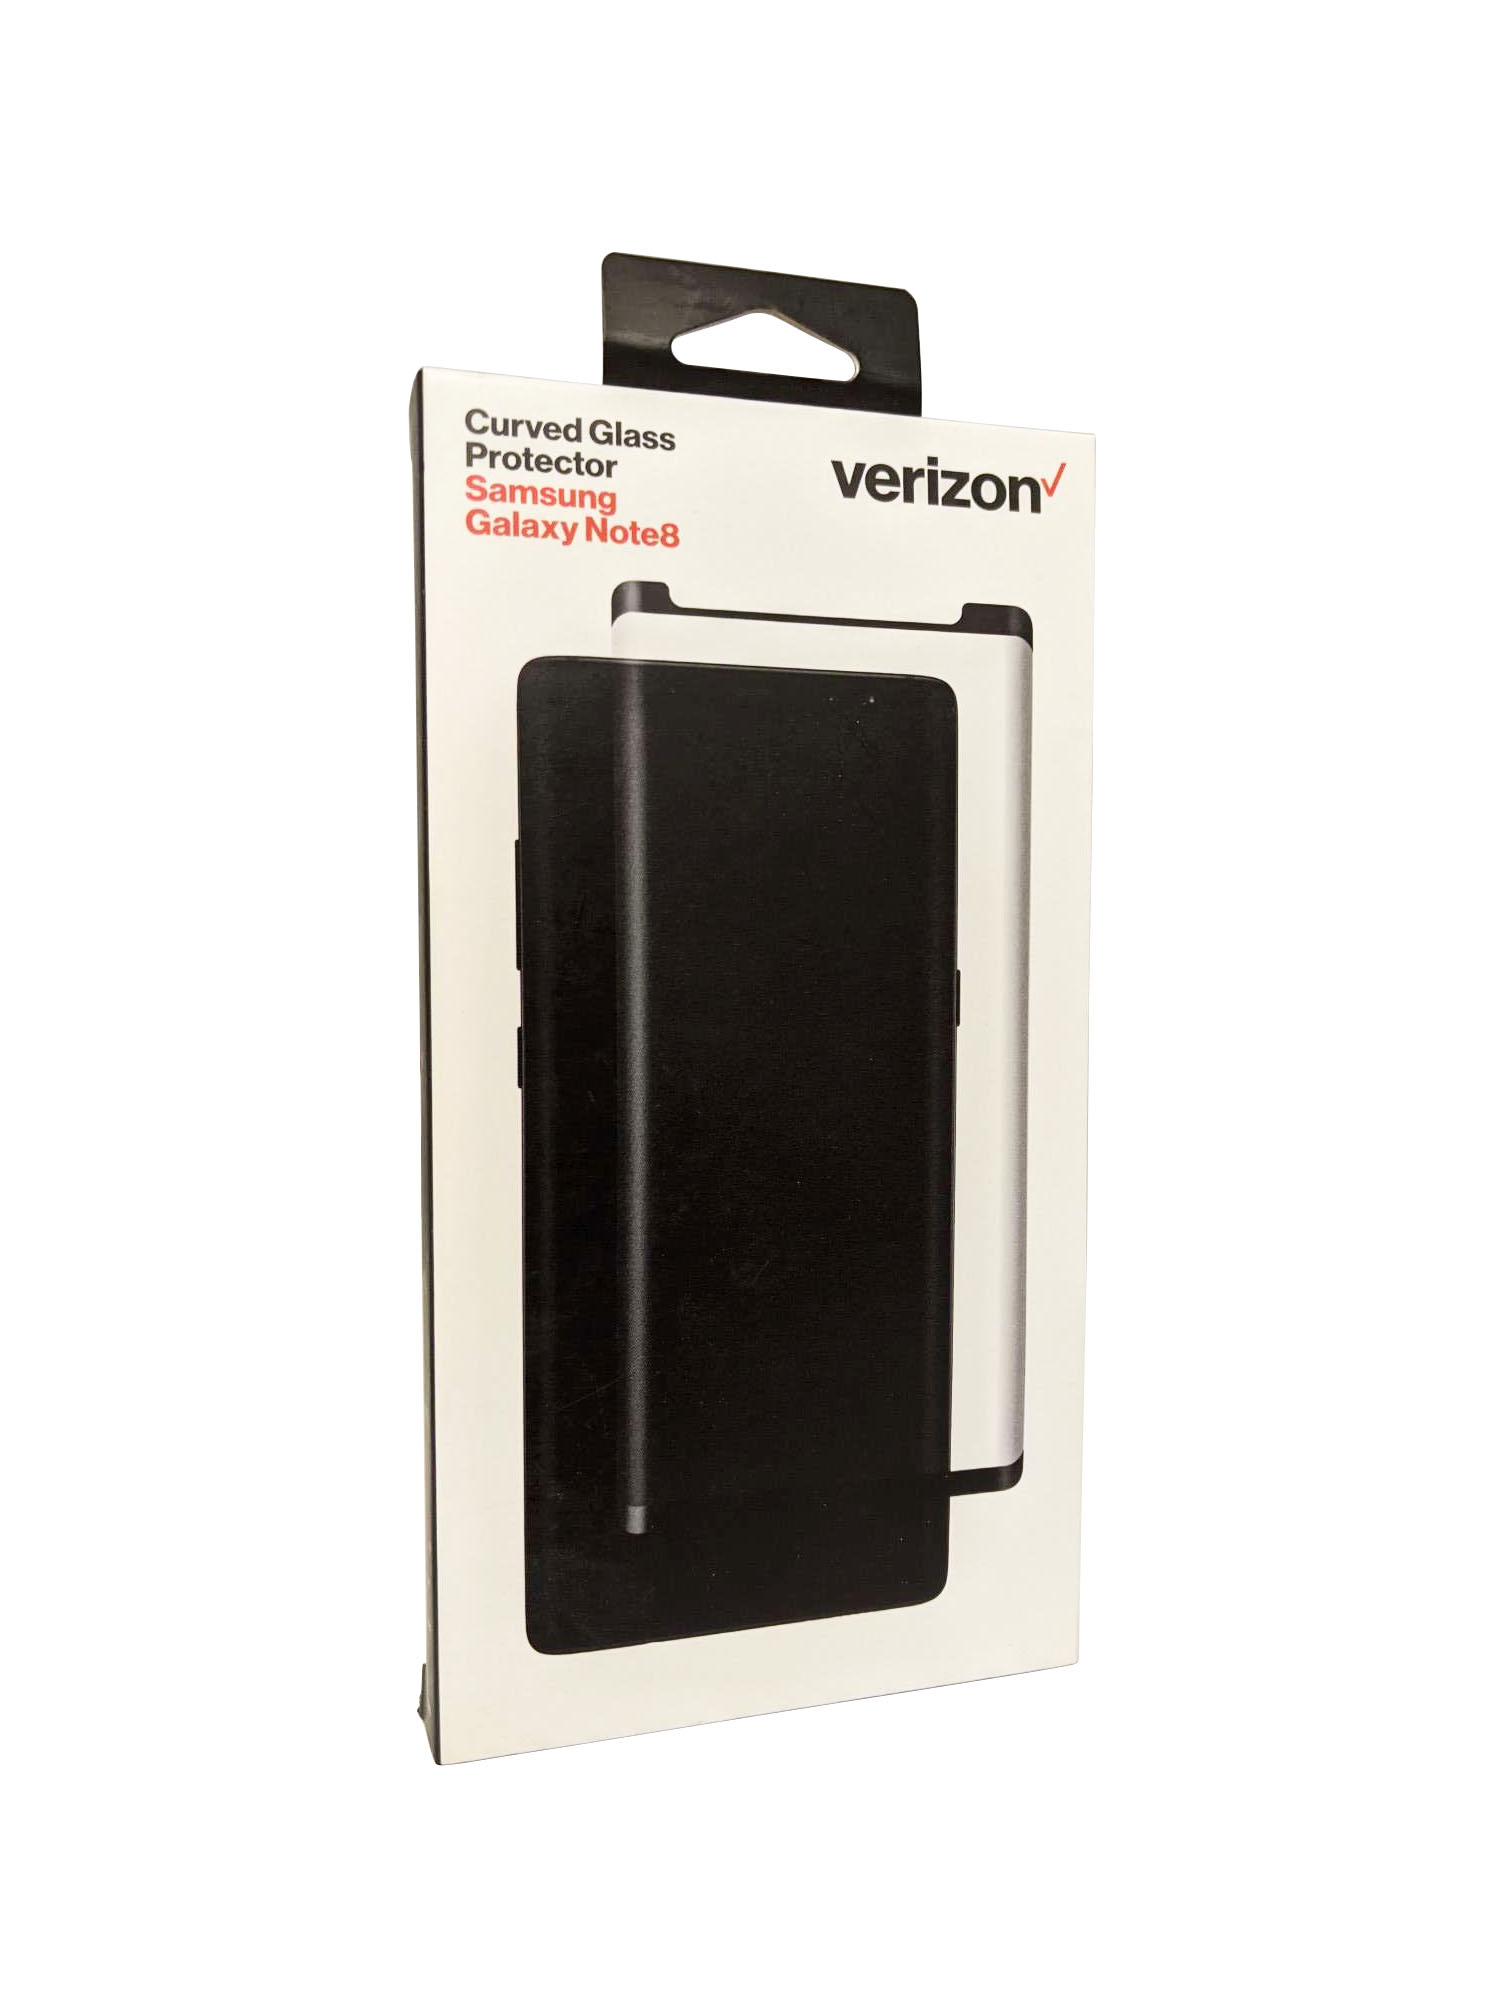 Verizon Curved Galaxy Note 8 Tempered Glass Screen Protector for Galaxy Note8